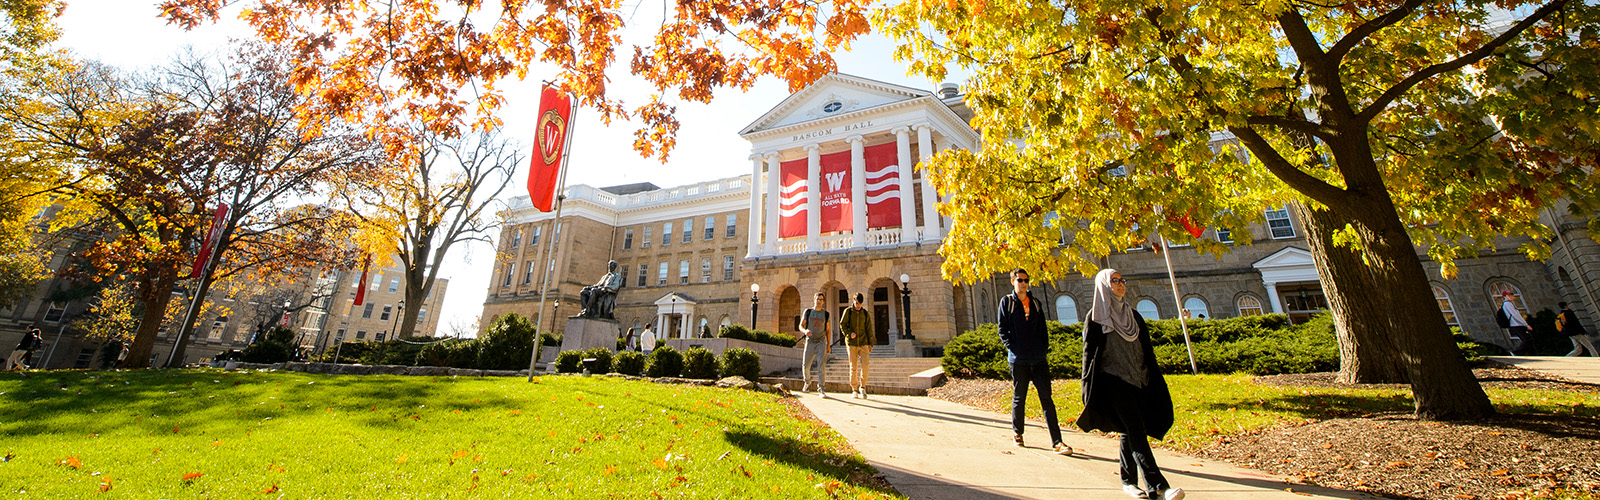 Students walk along a colorful tree-lined sidewalk outside Bascom Hall in fall at the University of Wisconsin-Madison on Nov. 4, 2016.